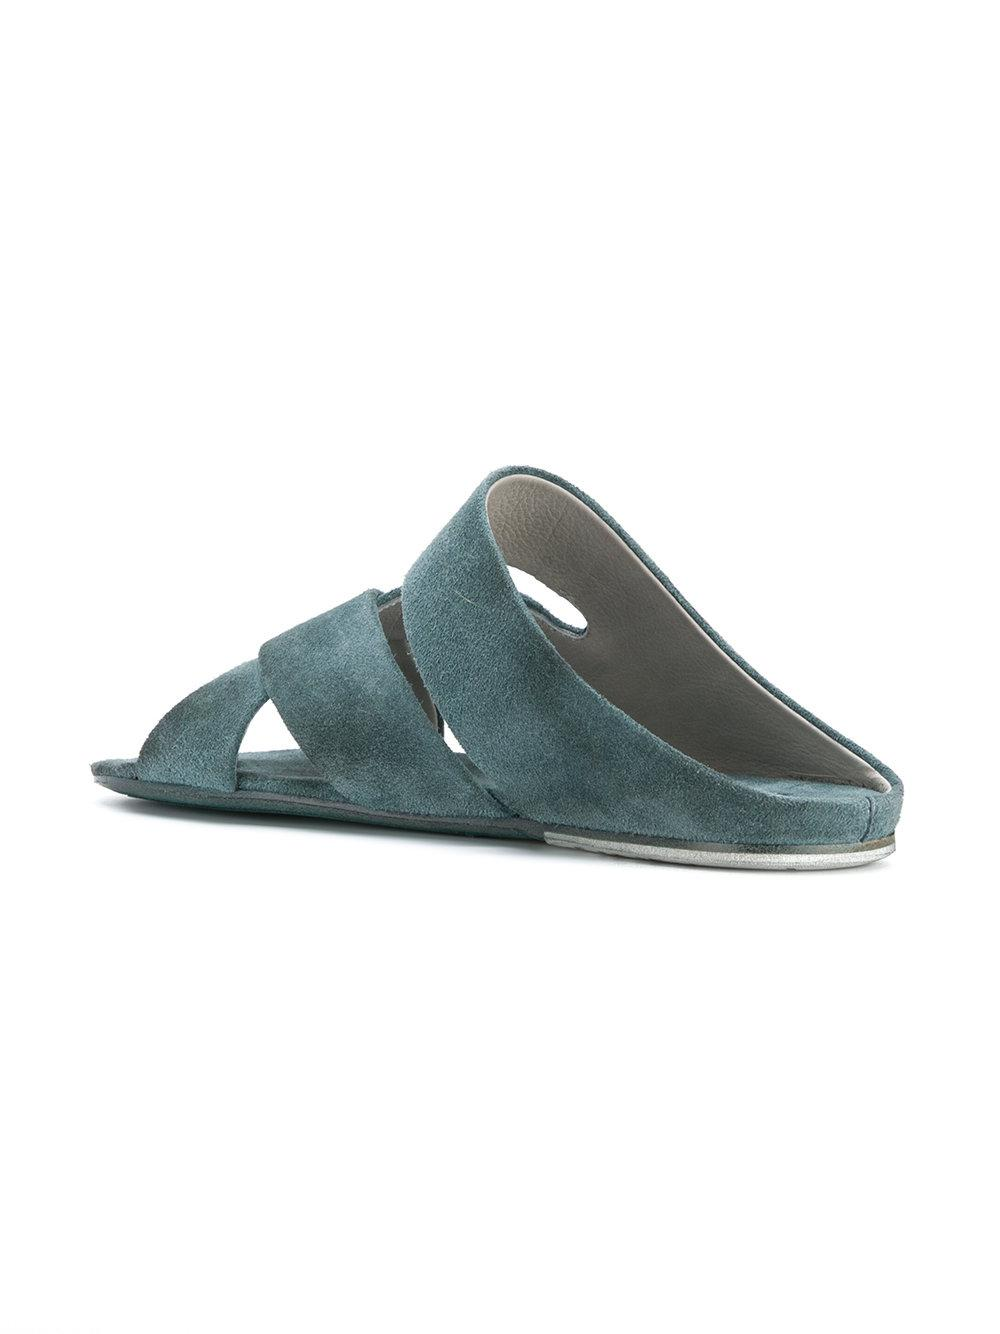 distressed woven front sandals - Green Mars zyBoZgC